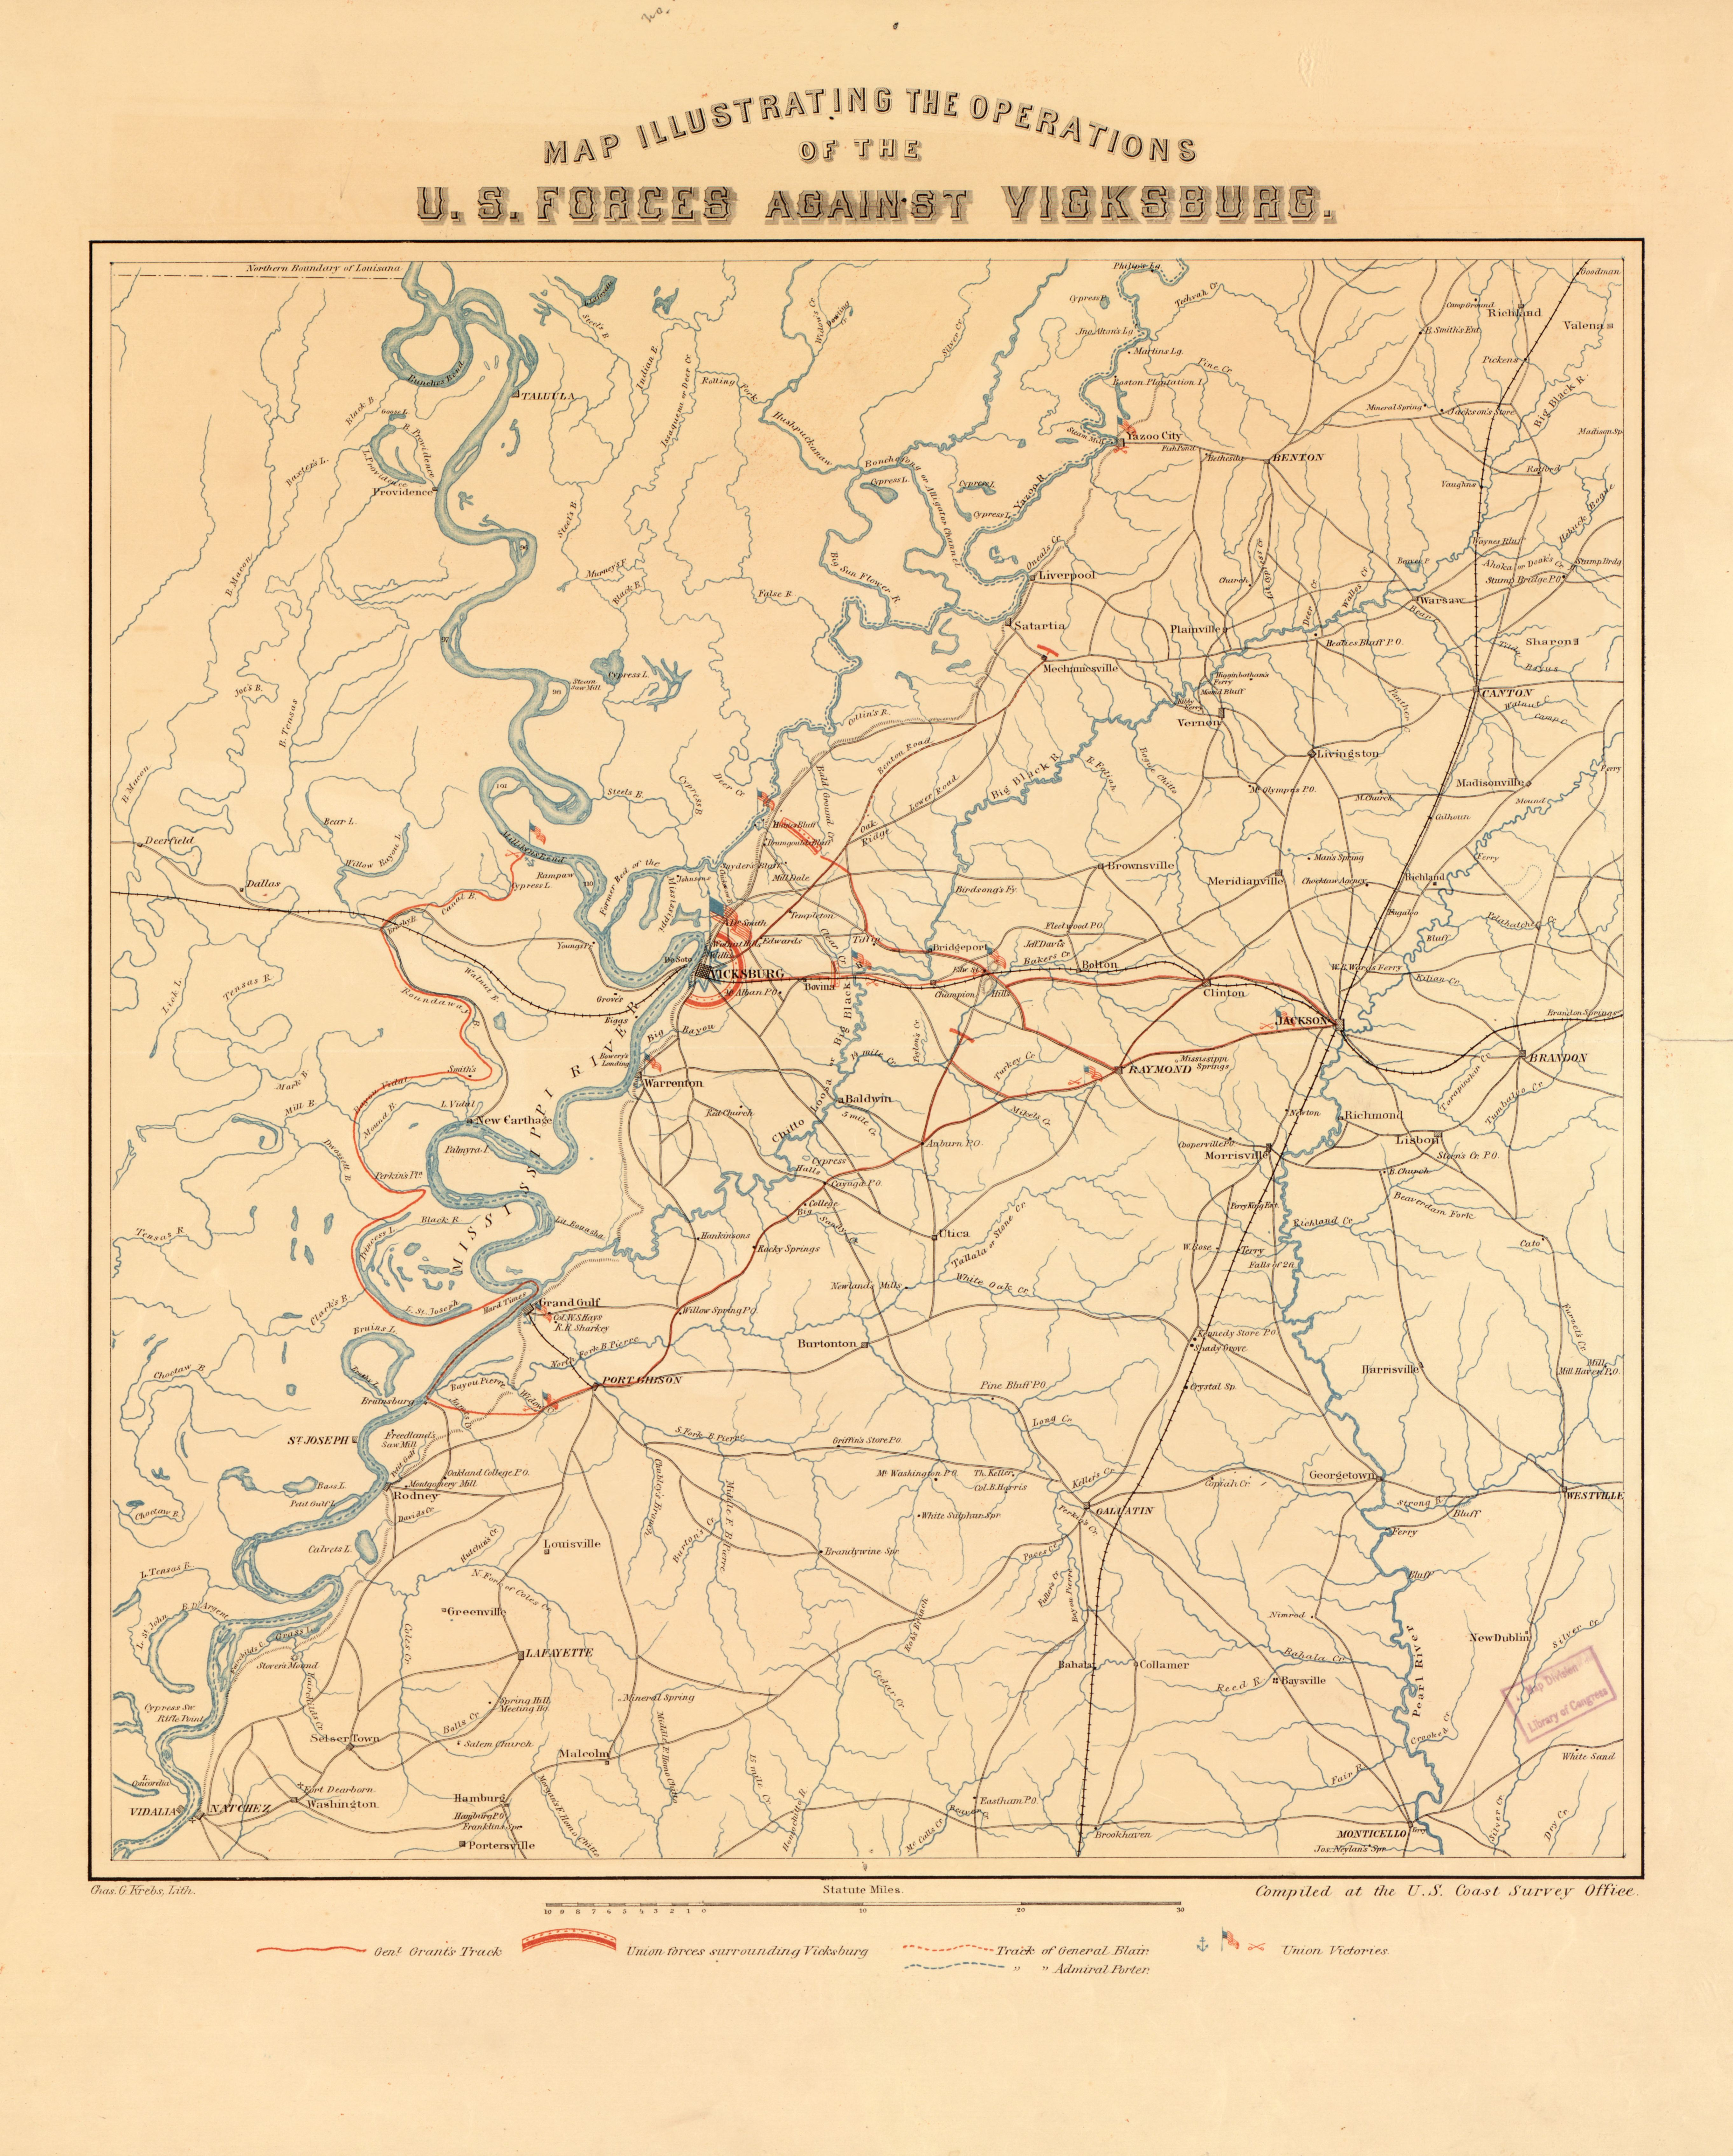 Filemap Illustrating The Operations Of The Us Forces Against - Vicksburg-on-us-map